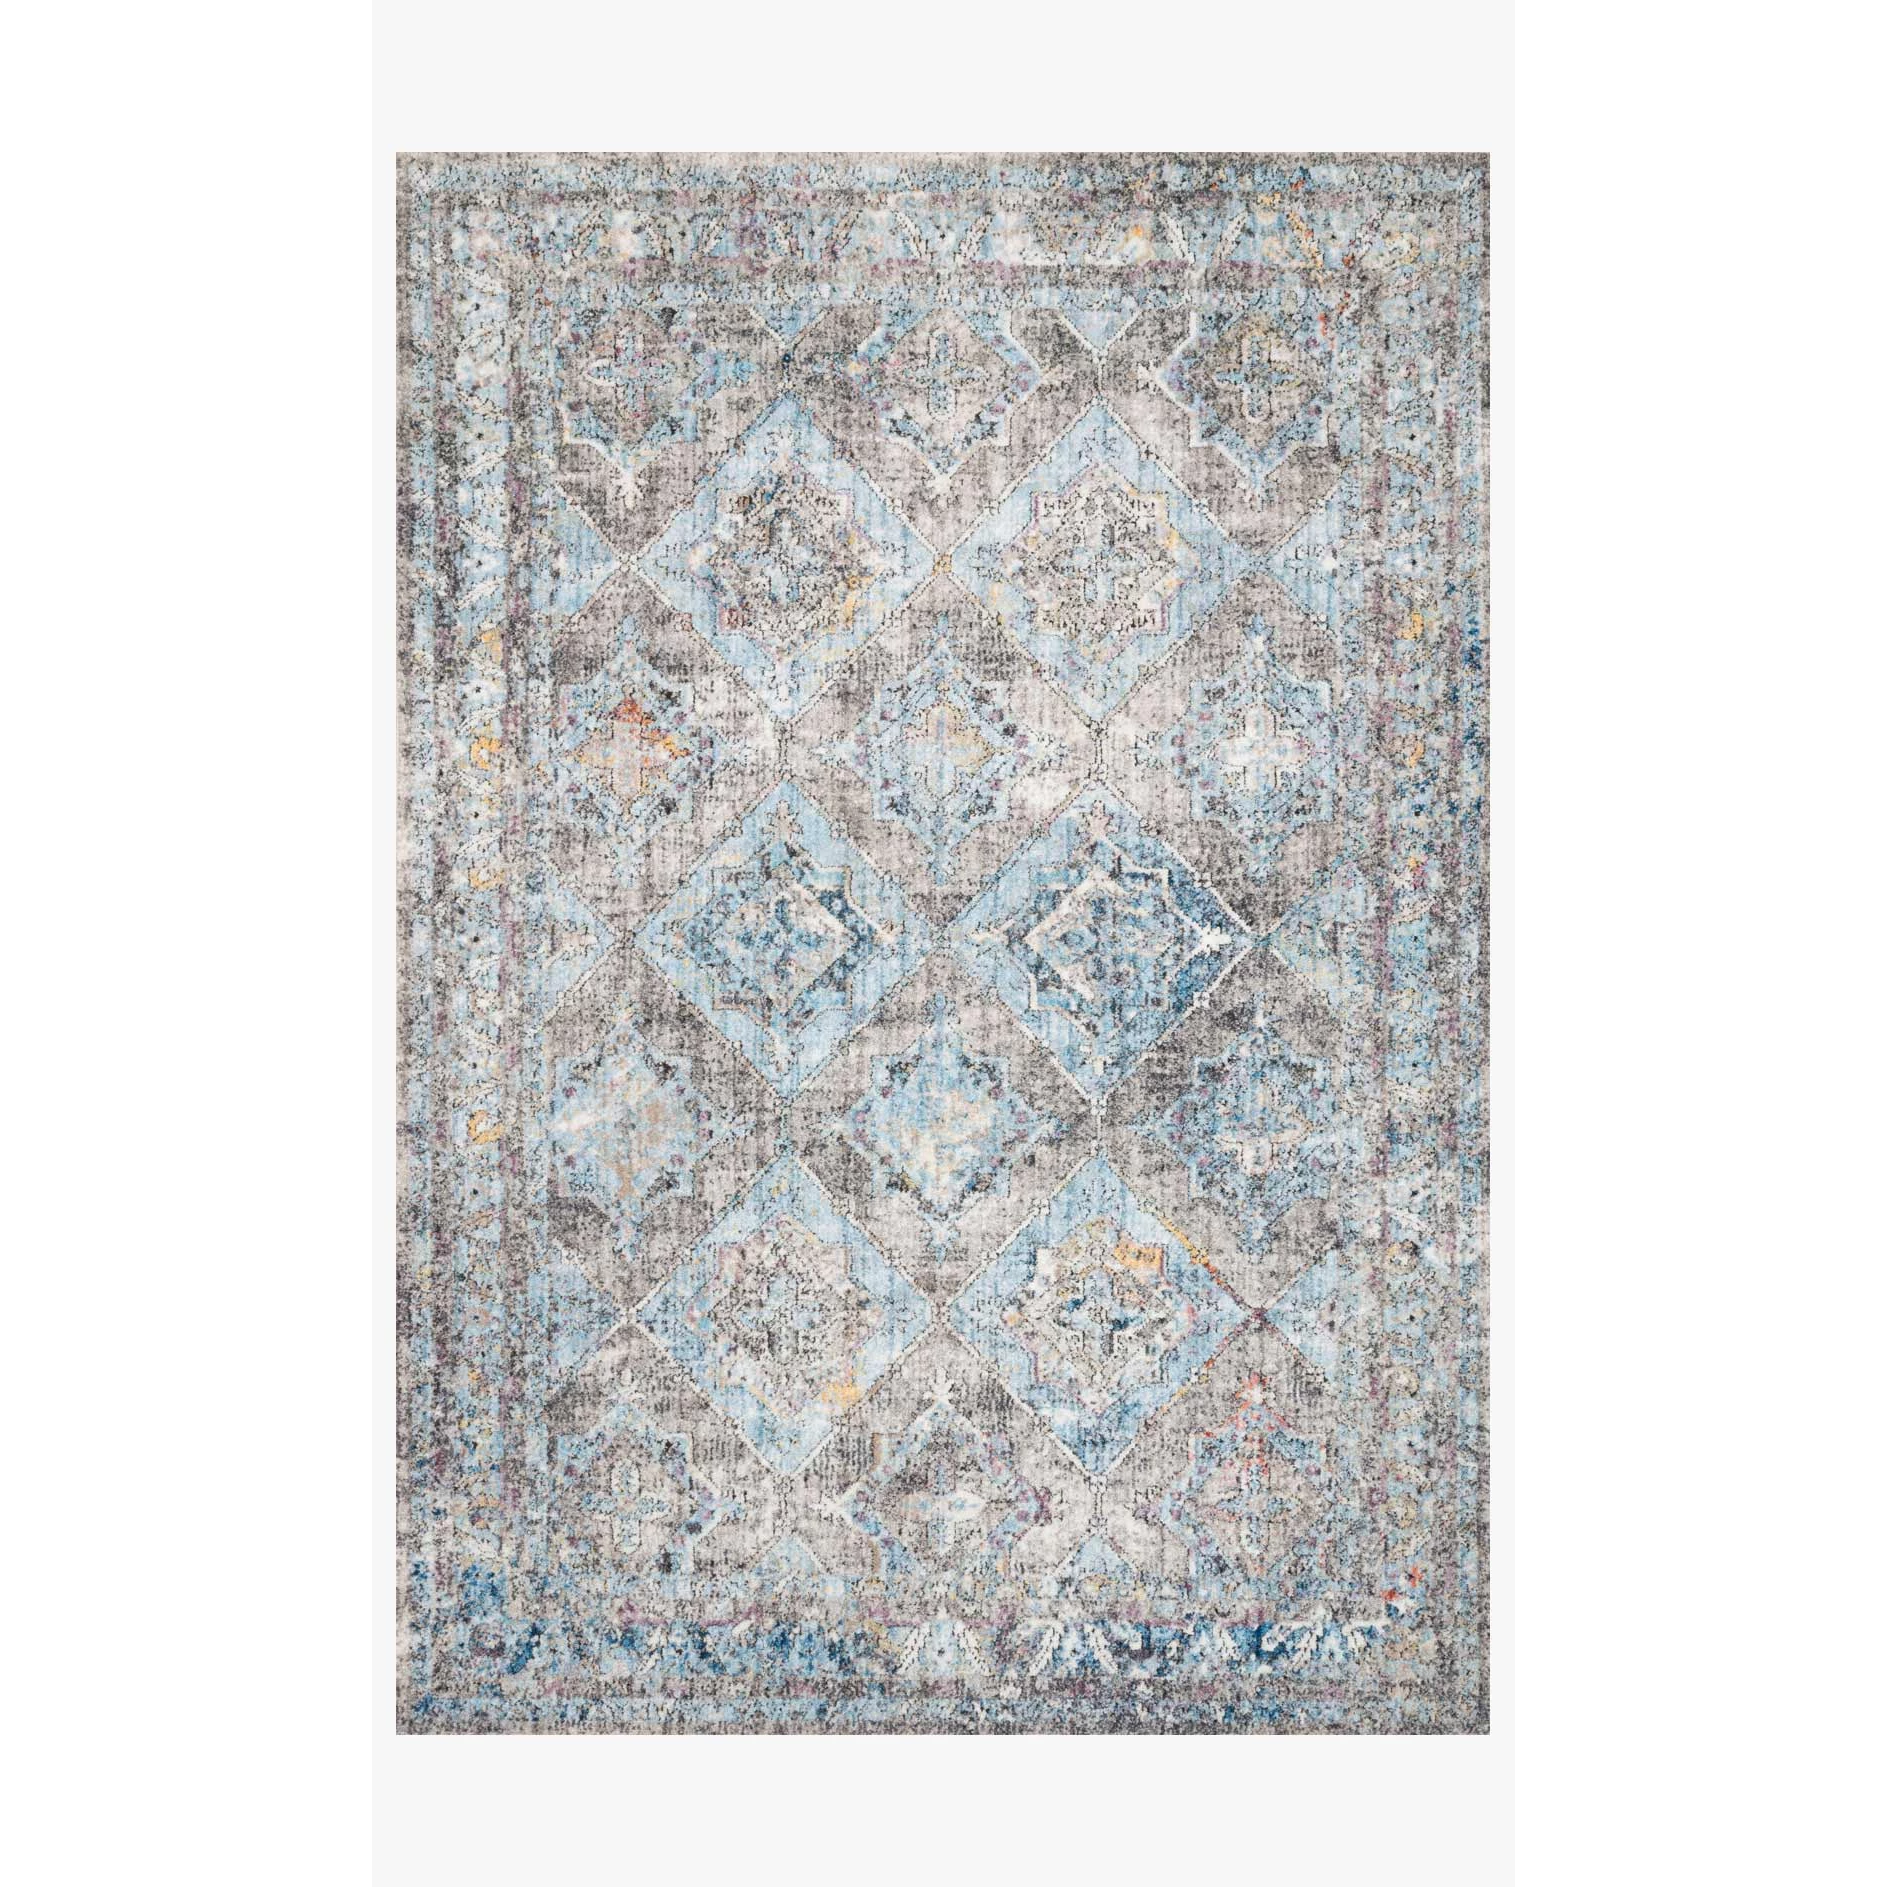 Dante Rugs by Loloi - DN-03 Granite / Lt. Blue-Loloi Rugs-Blue Hand Home